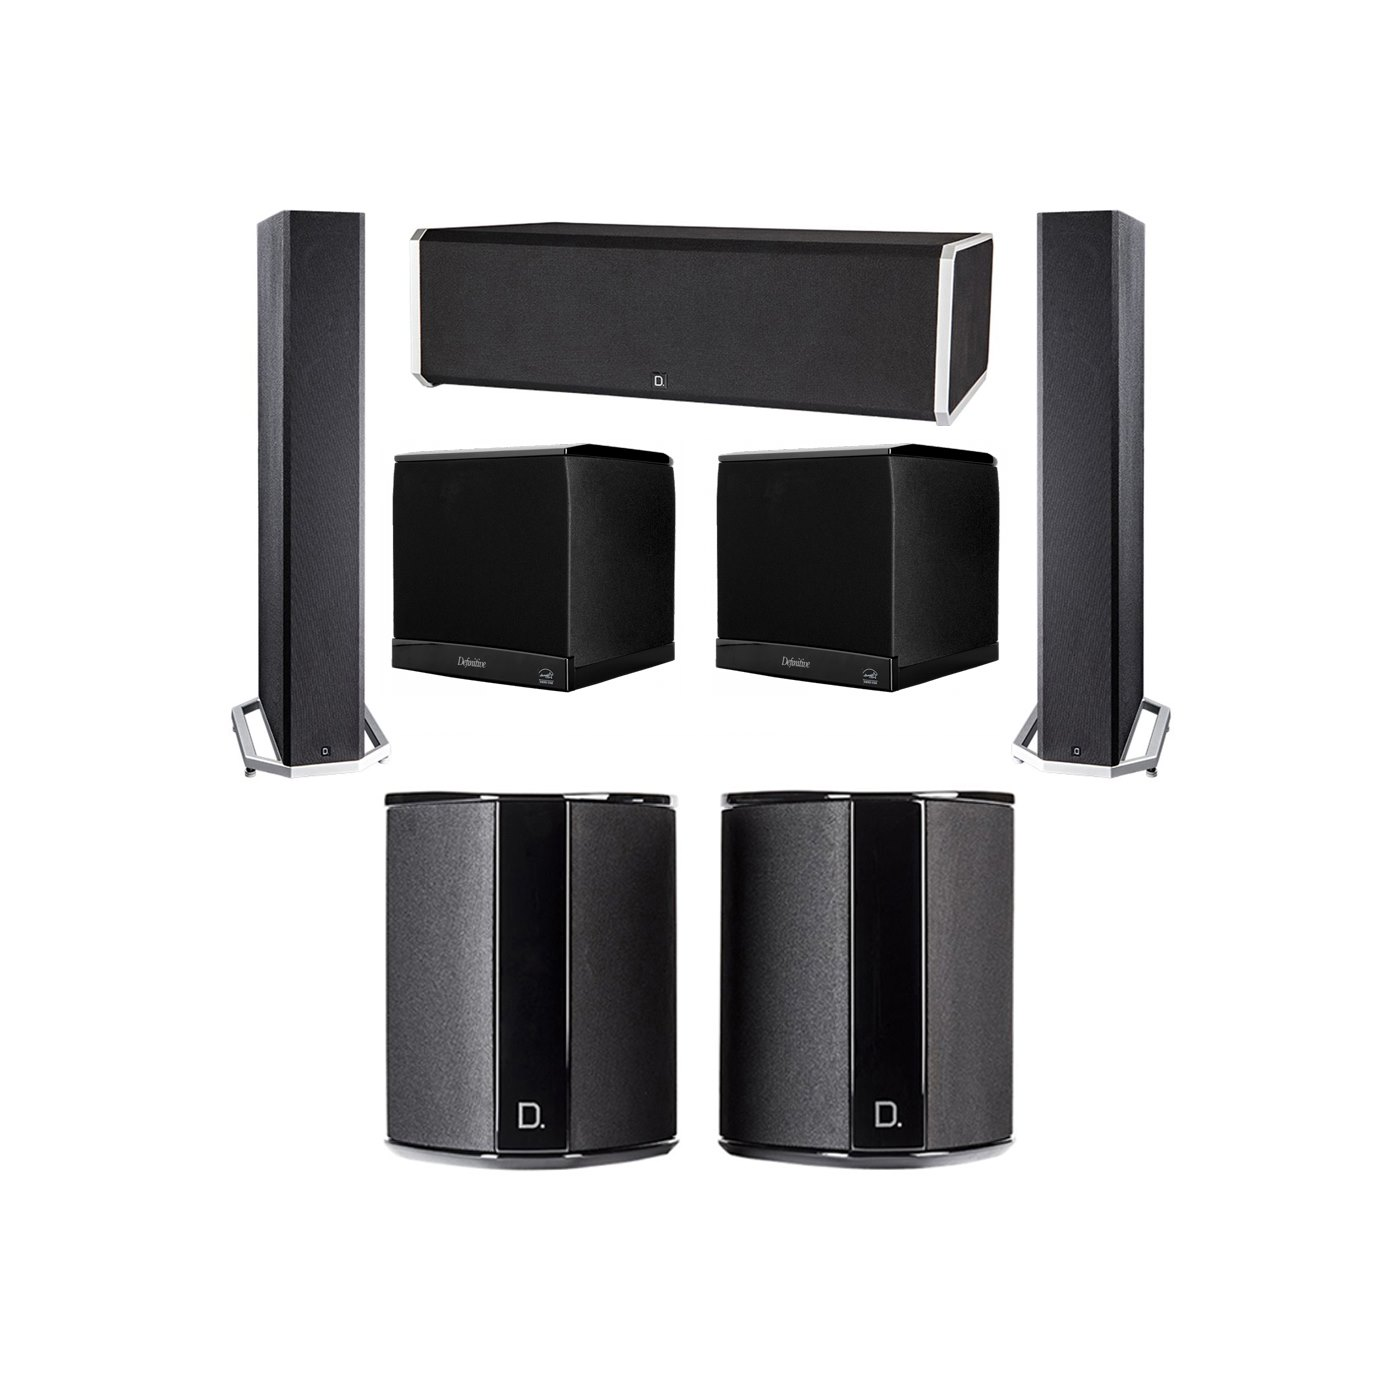 Definitive Technology 5.2 System with 2 BP9040 Tower Speakers, 1 CS9080 Center Channel Speaker, 2 SR9040 Surround Speaker, 2 Definitive Technology SuperCube 4000 Powered Subwoofer